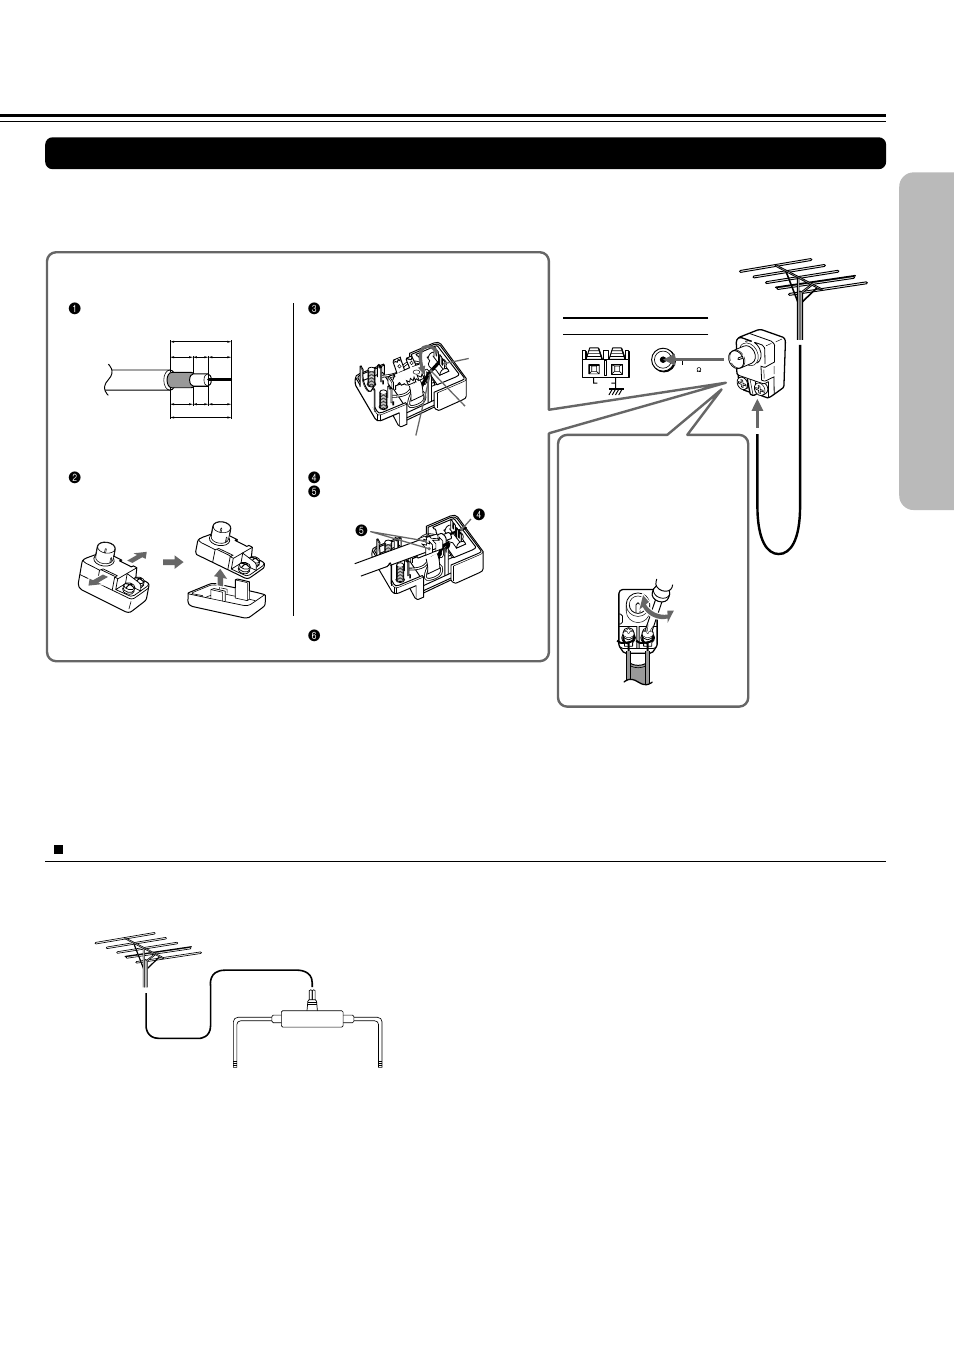 Connecting An Fm Outdoor Antenna Aerial Directional Iinkage Trouble With Tv Using Vcr And Cable Splitter Onkyo Dr S20 User Manual Page 15 72